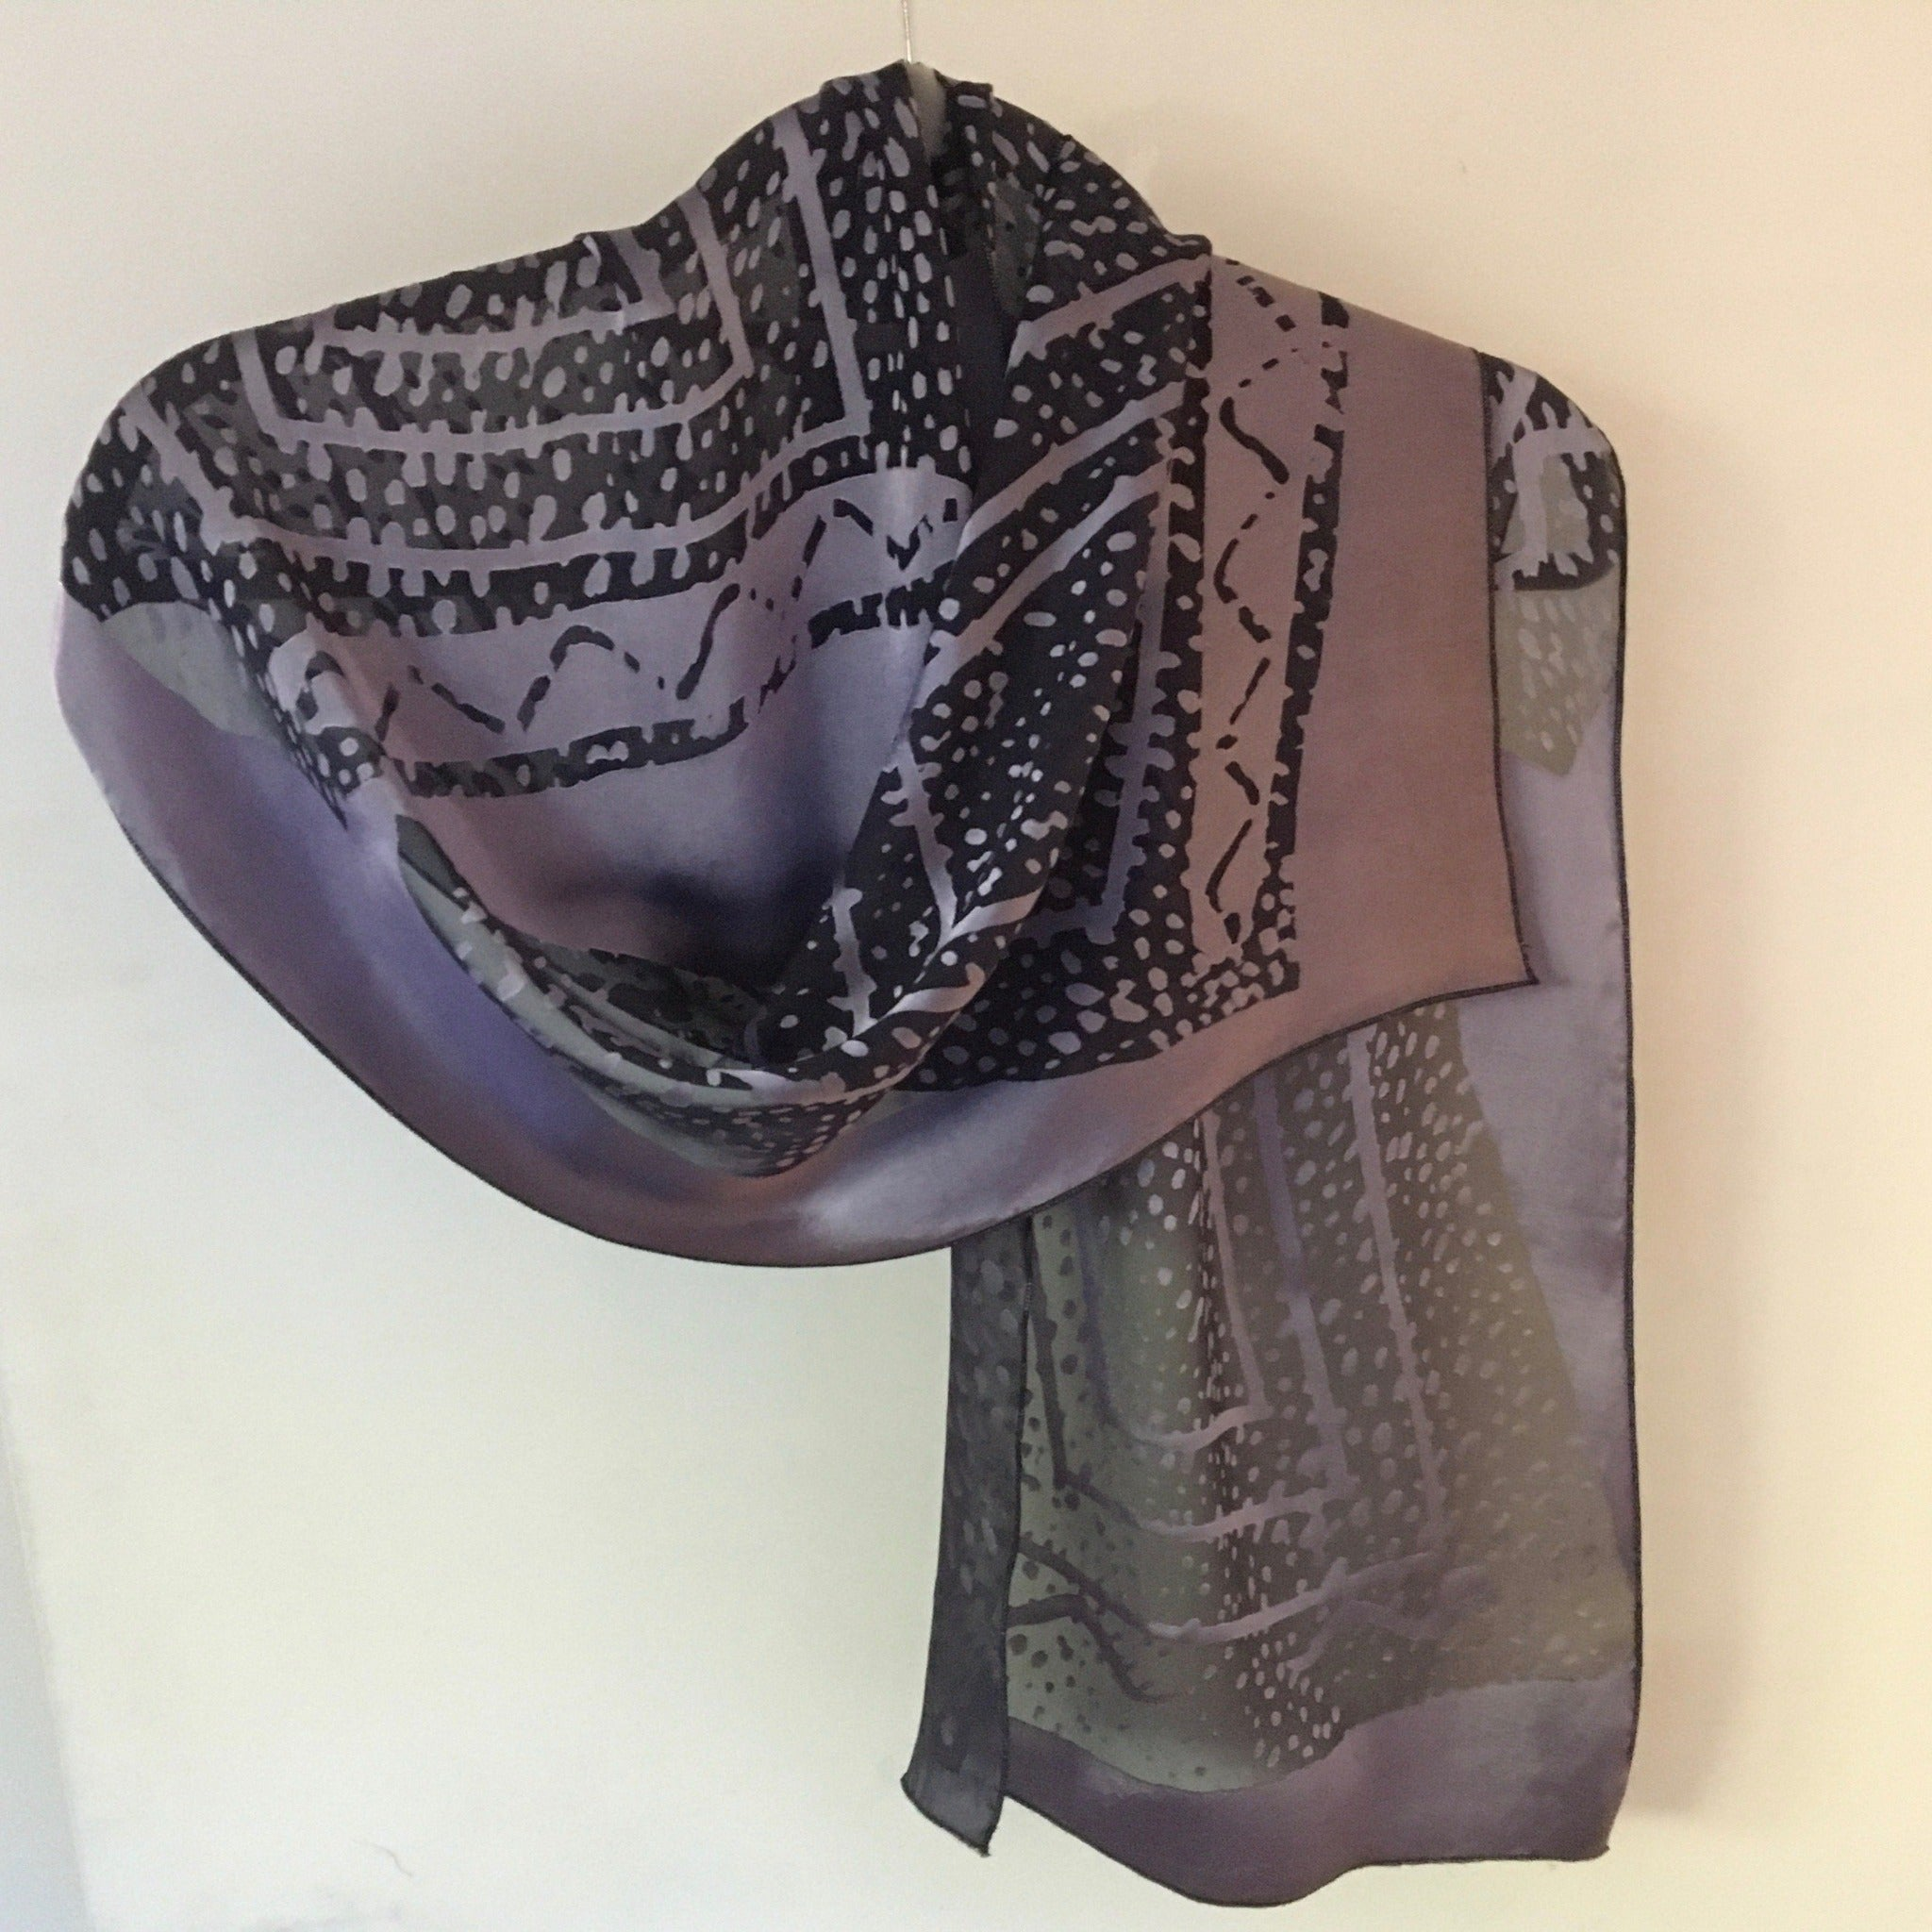 Devore silk scarf by Carolyn Cabena